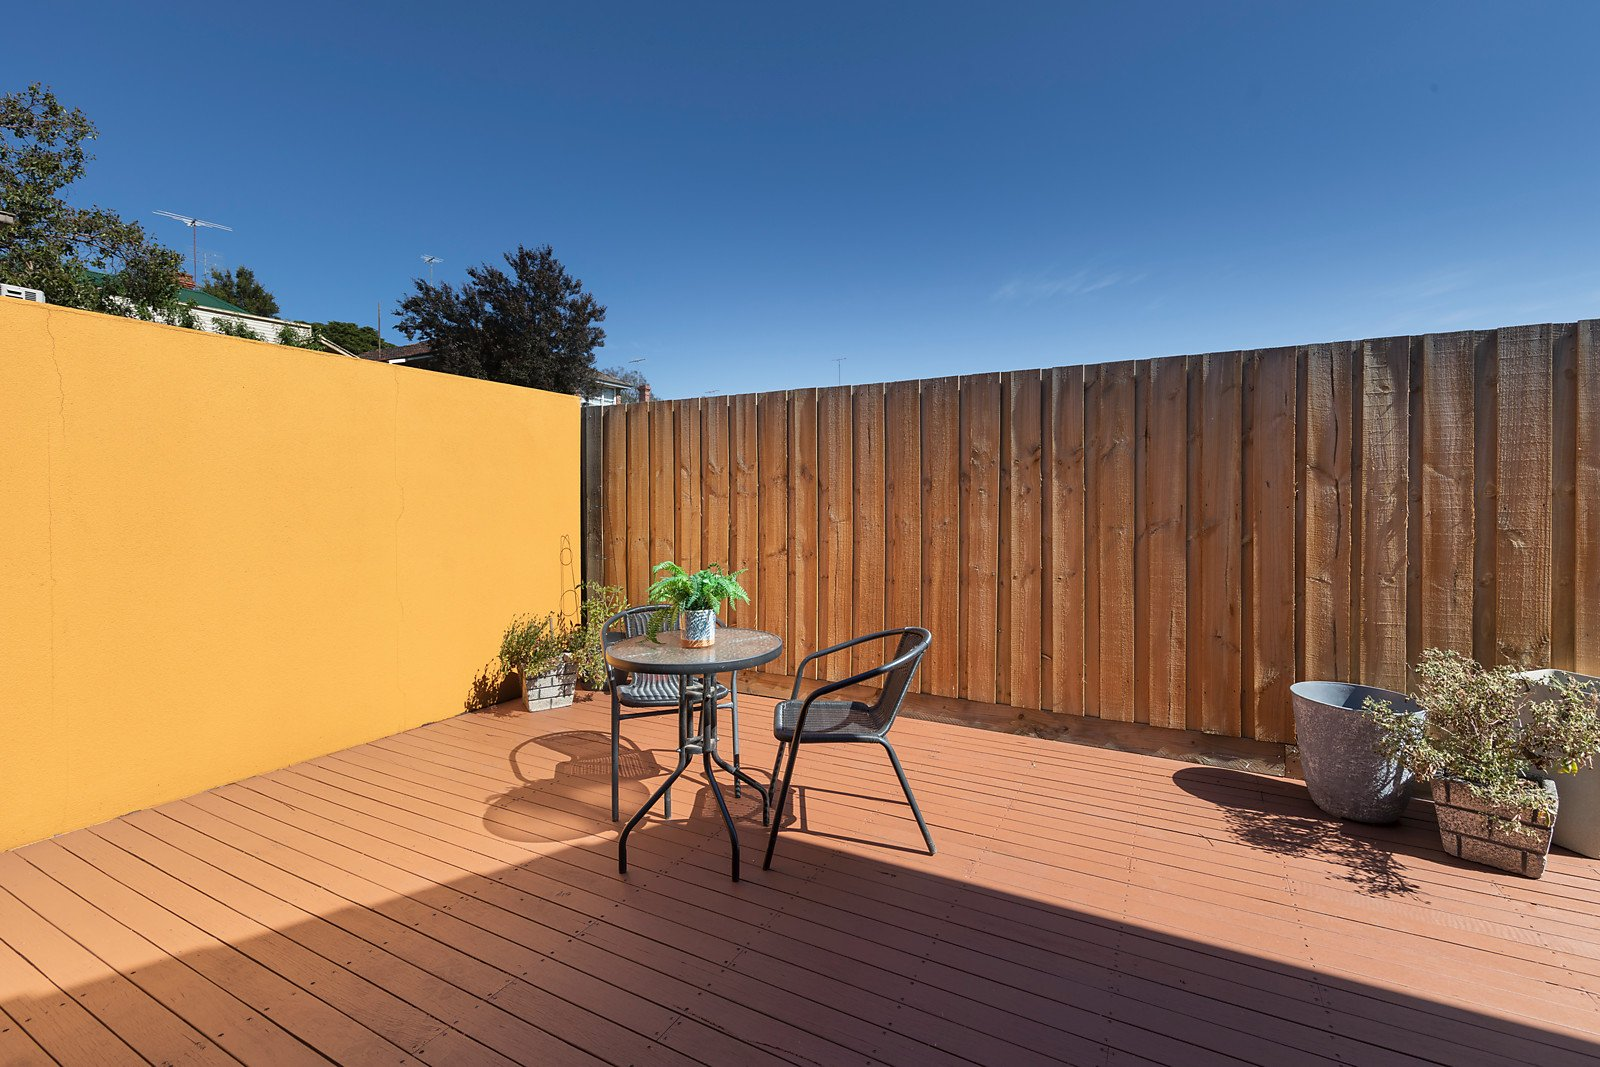 4/7 Balfe Crescent, Brunswick West, VIC, 3055 image 14